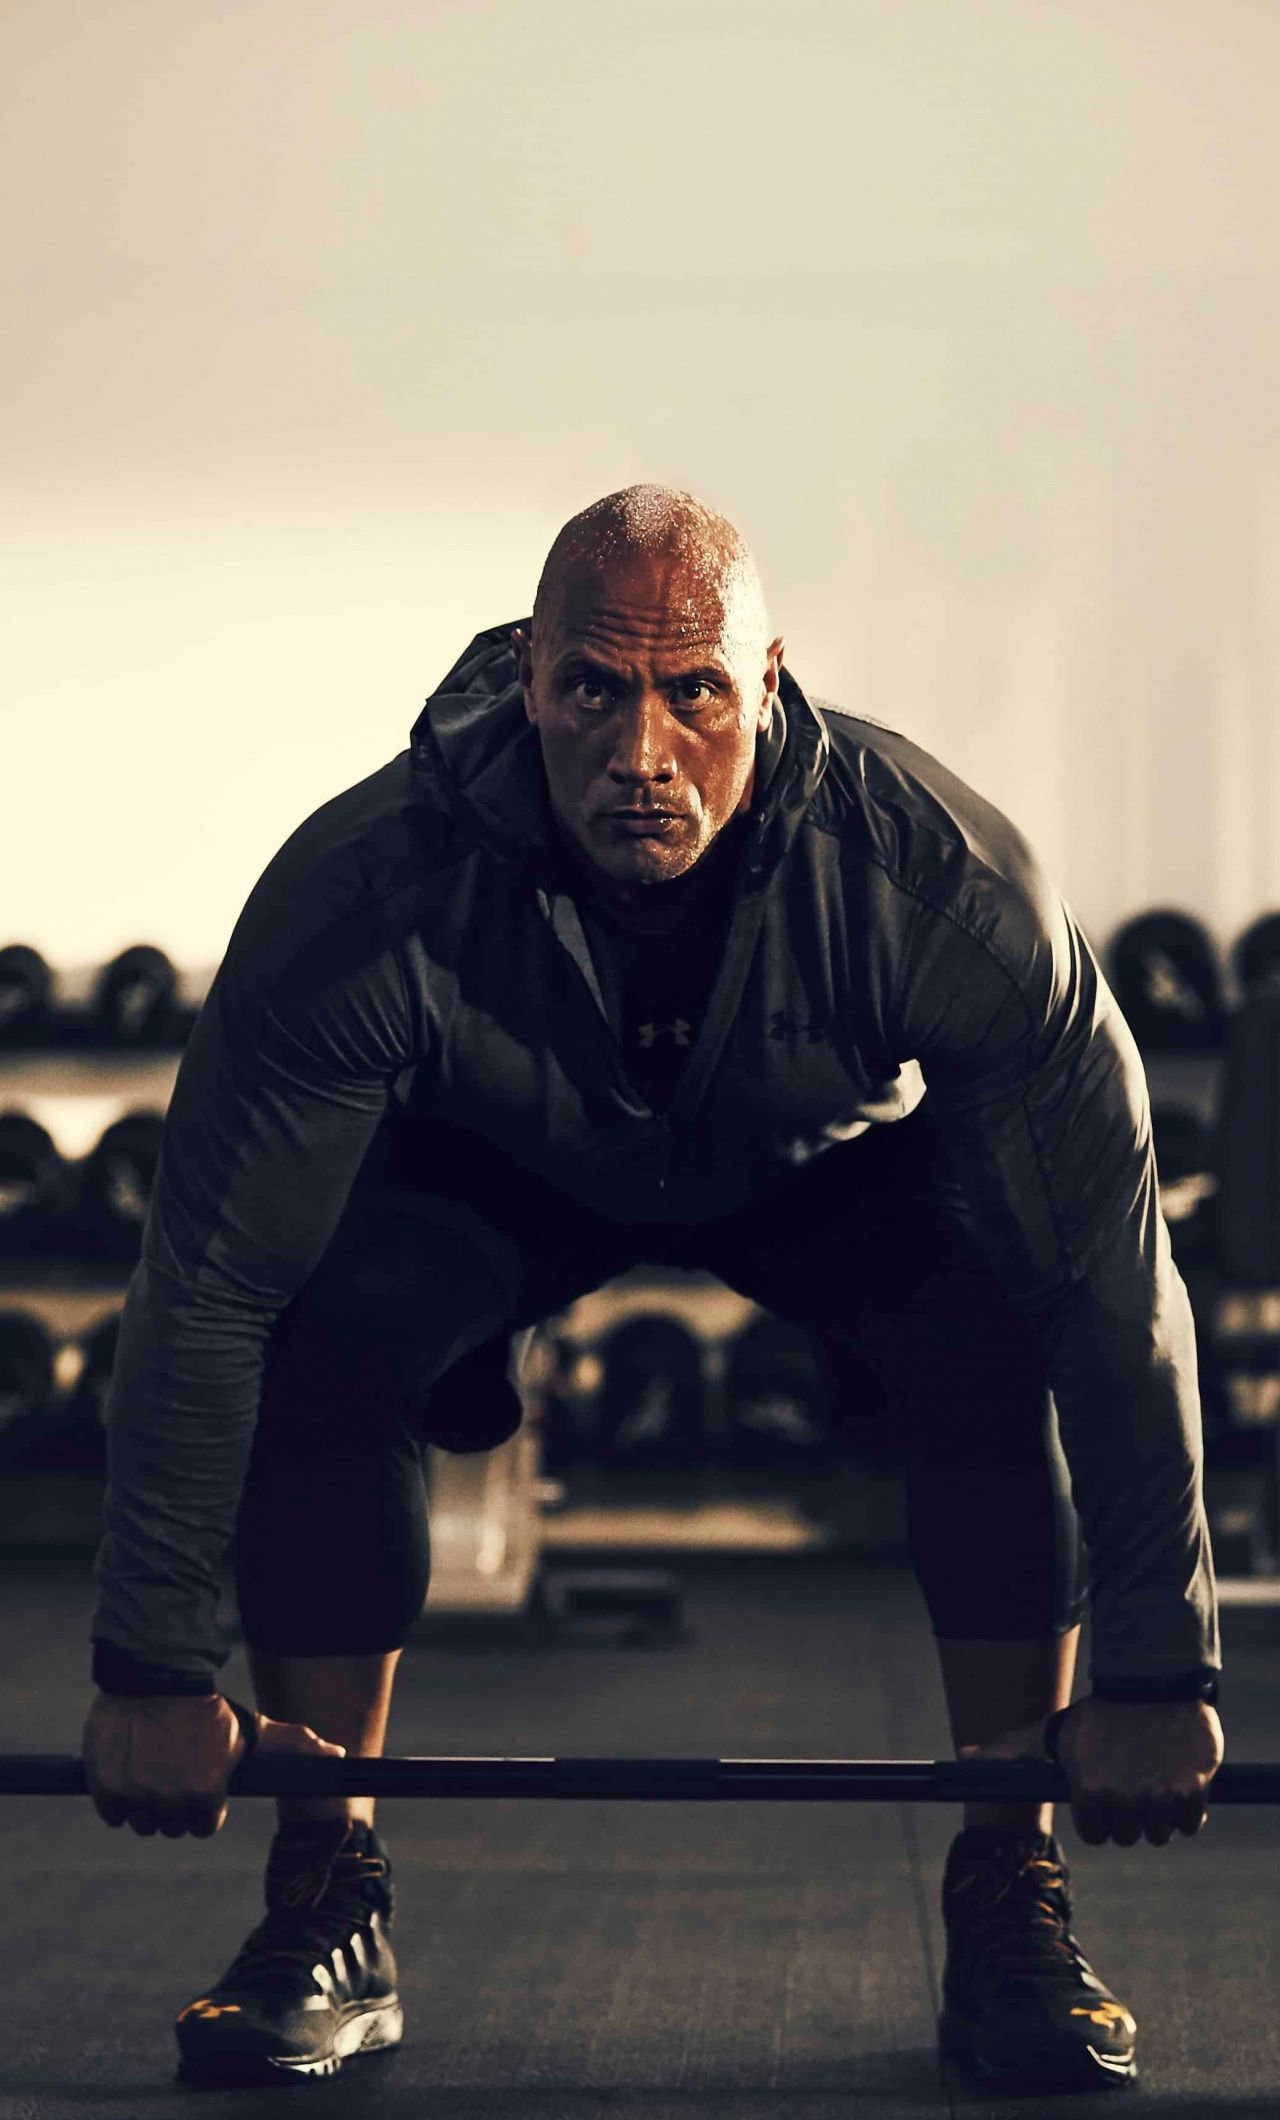 Exercise Dwayne Johnson Under Armour Celebrity 1280x2120 Wallpaper Dwayne Johnson Workout The Rock Dwayne Johnson Dwayne Johnson